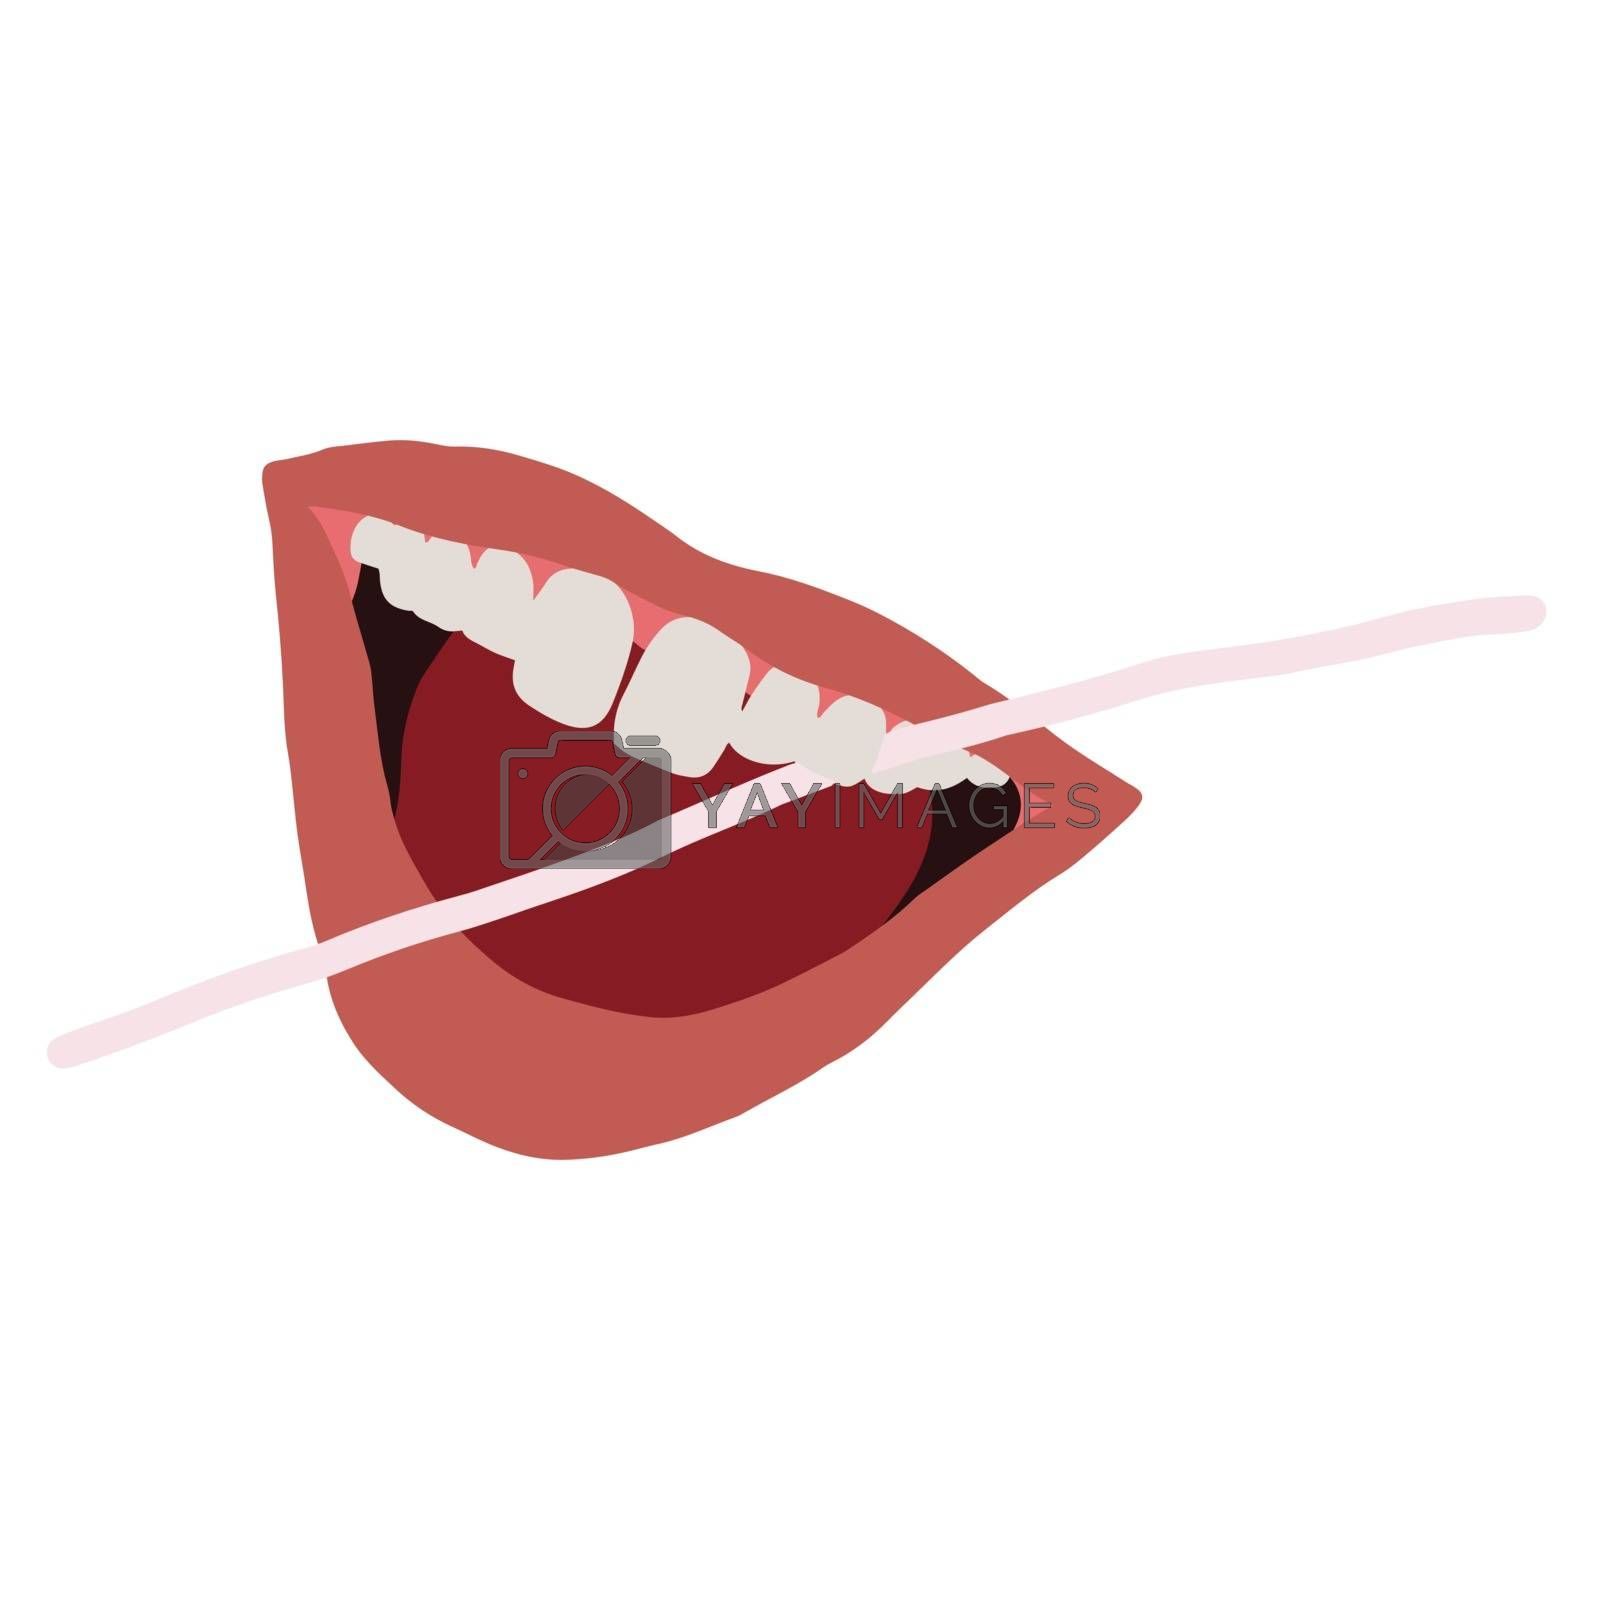 Open mouth with dental floss illustration isolated on white background. Dental care concept. Flat cartoon style. Vector Illustration.